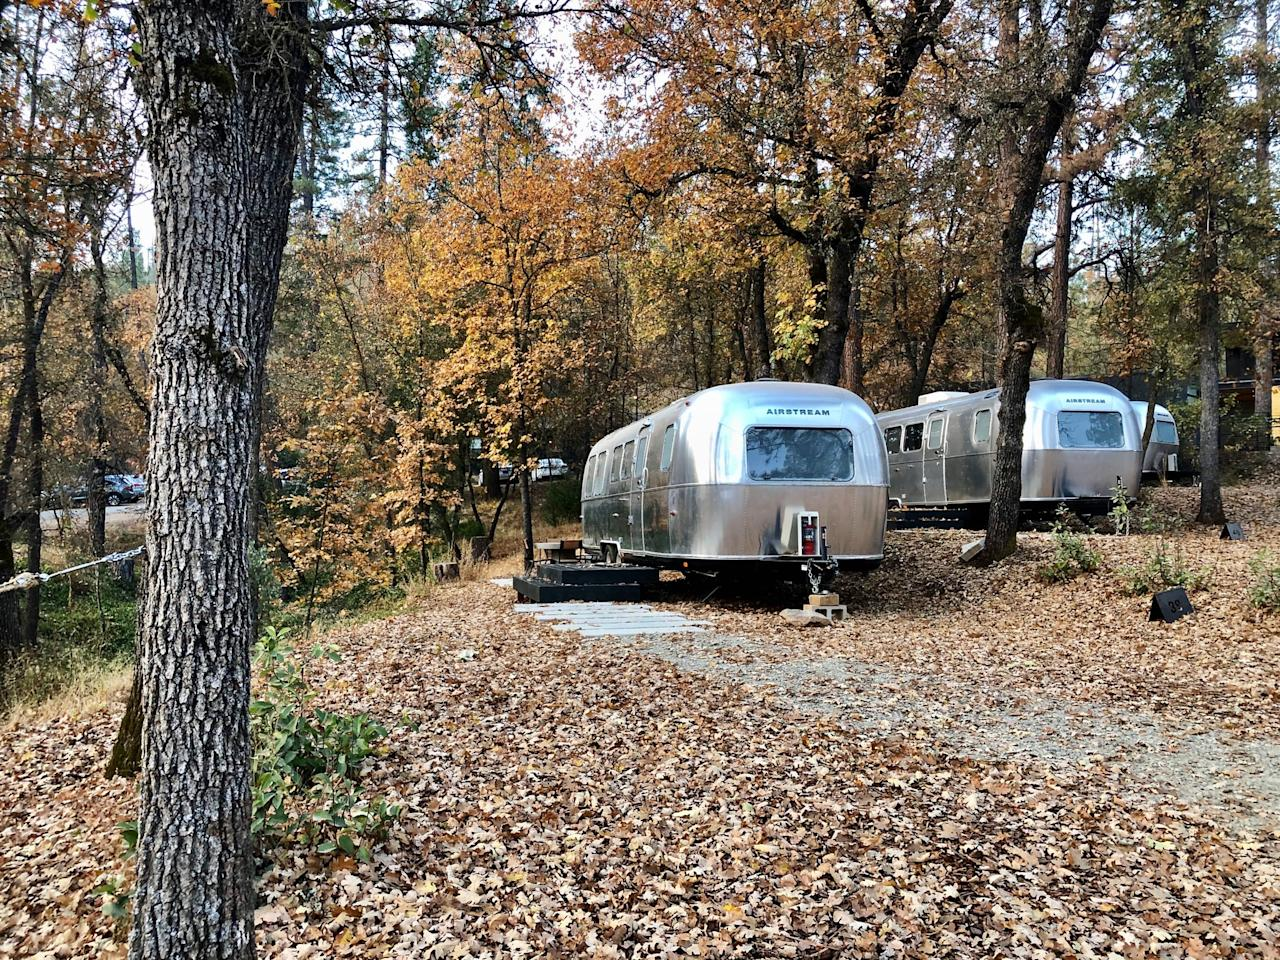 <p>The airstreams are not just placed anywhere - instead, each one is carefully placed along the roads, pond, and landscaping so that you don't feel cramped or too close to other guests.</p>